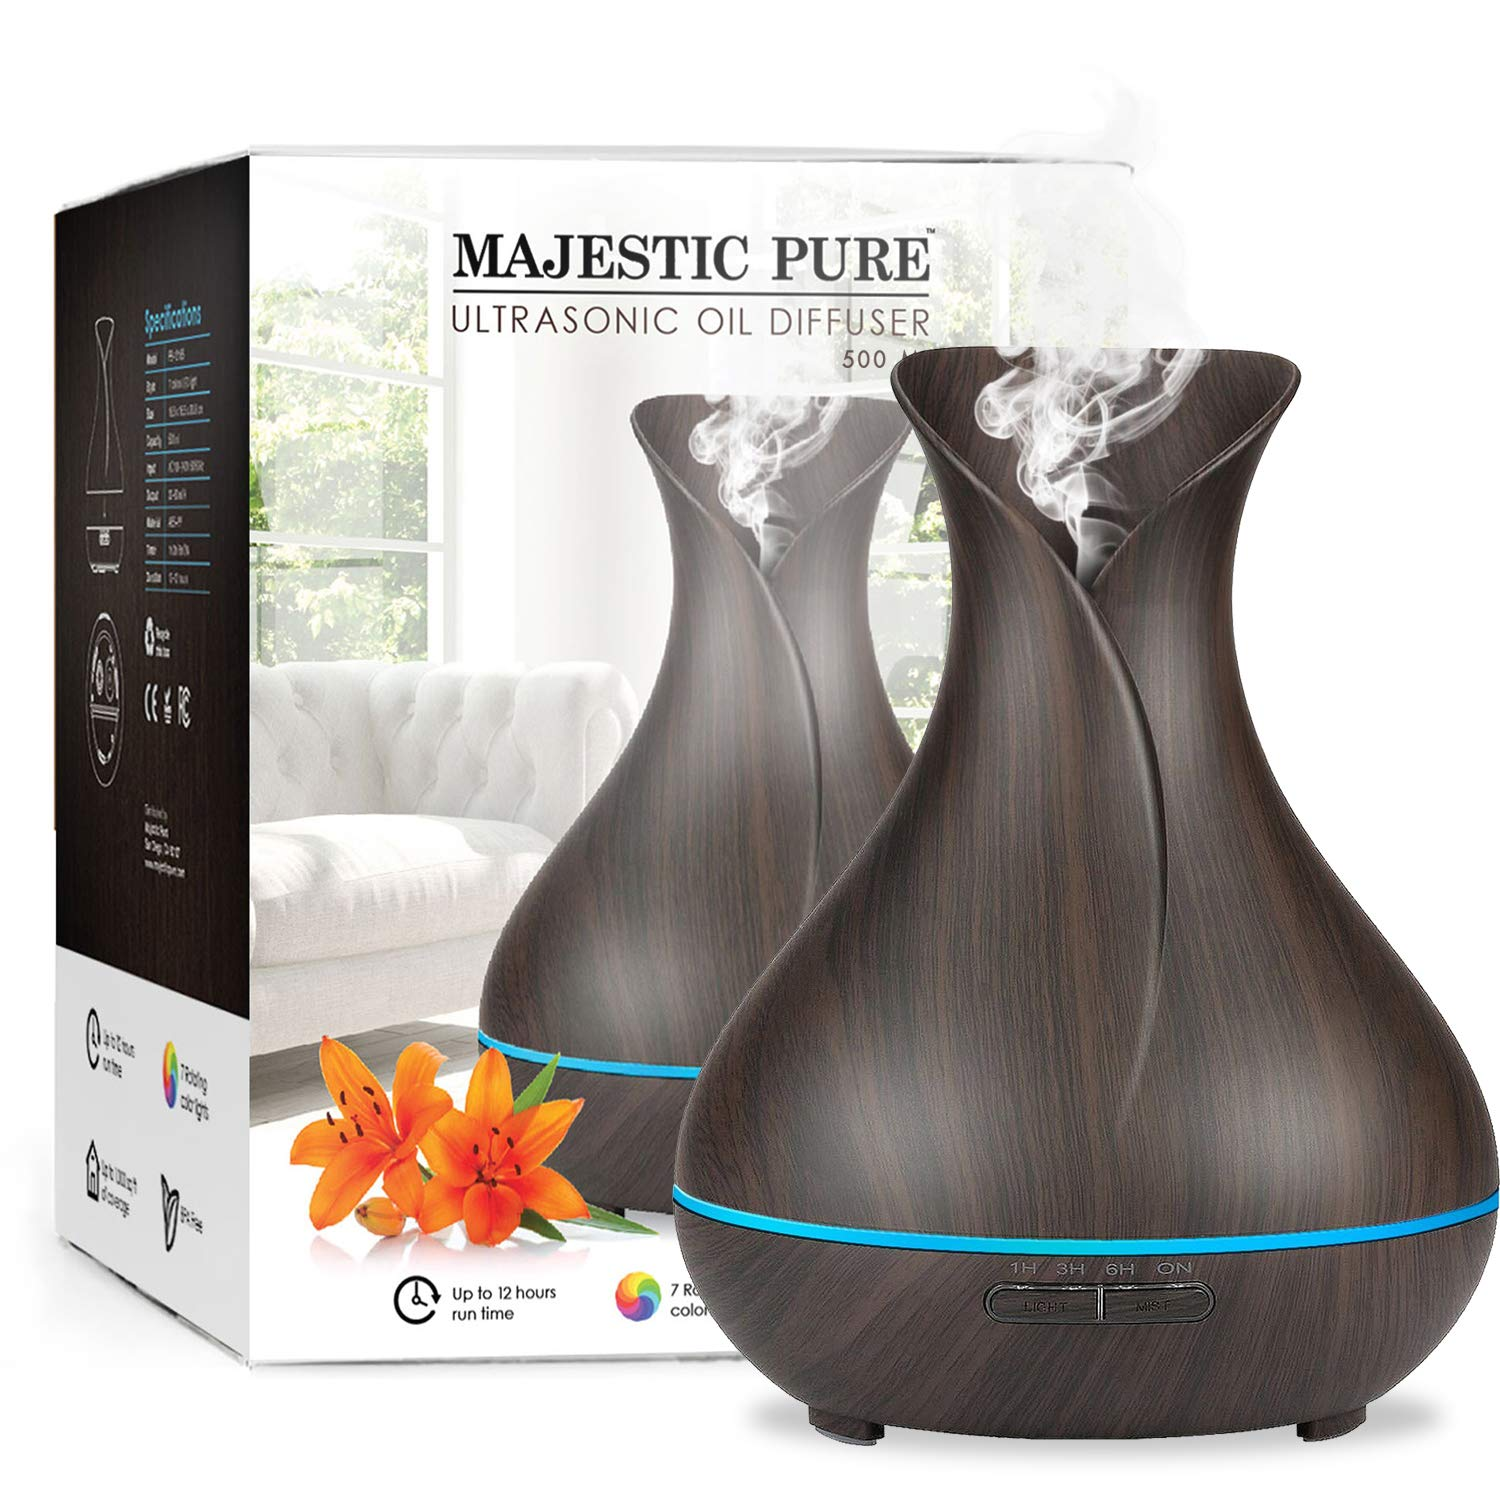 Majestic Pure Essential Oil Diffuser - Advanced Cool Mist Humidifier, Ultrasonic Aromatherapy Diffuser with Strongest Mist output - Large Room Coverage, Longer Run Times, BPA Safe - 400ml to 500ml